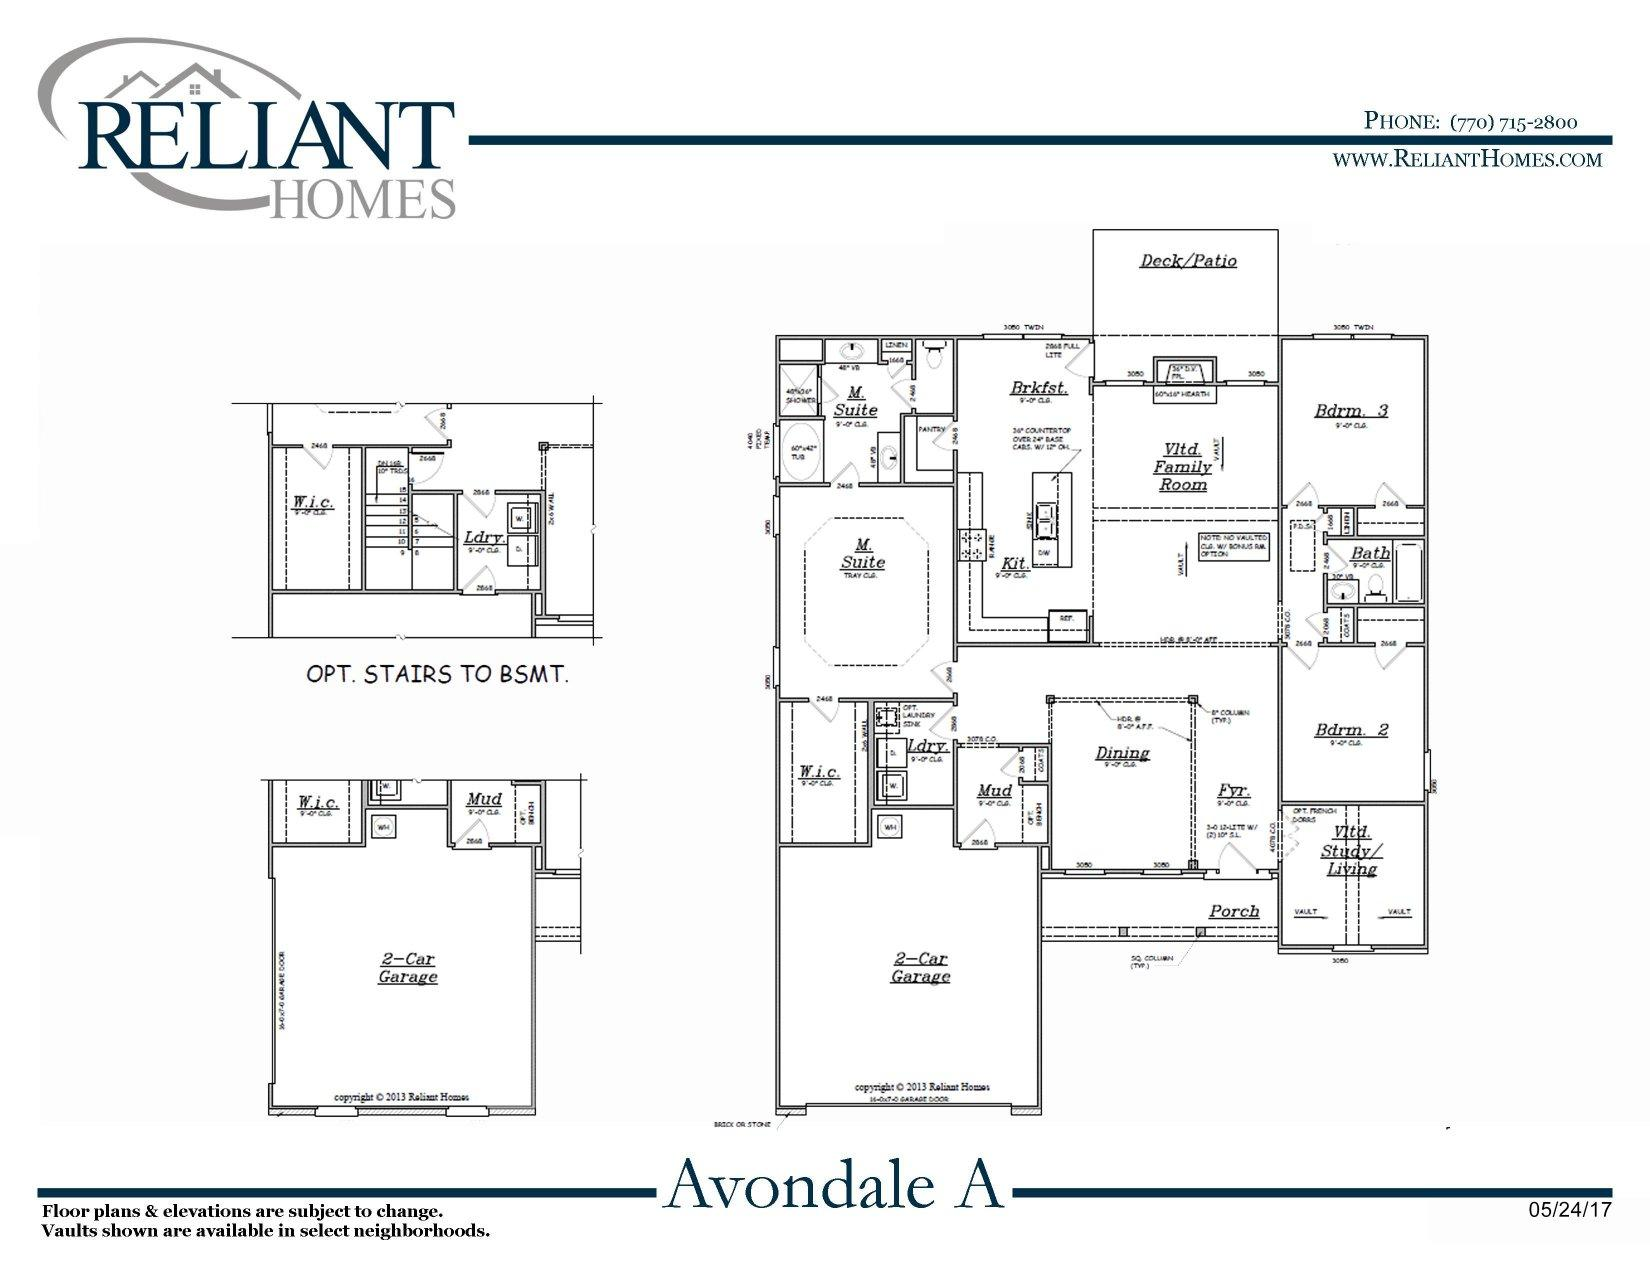 Avondale a fe reliant homes new homes in atlanta for Reliant homes floor plans